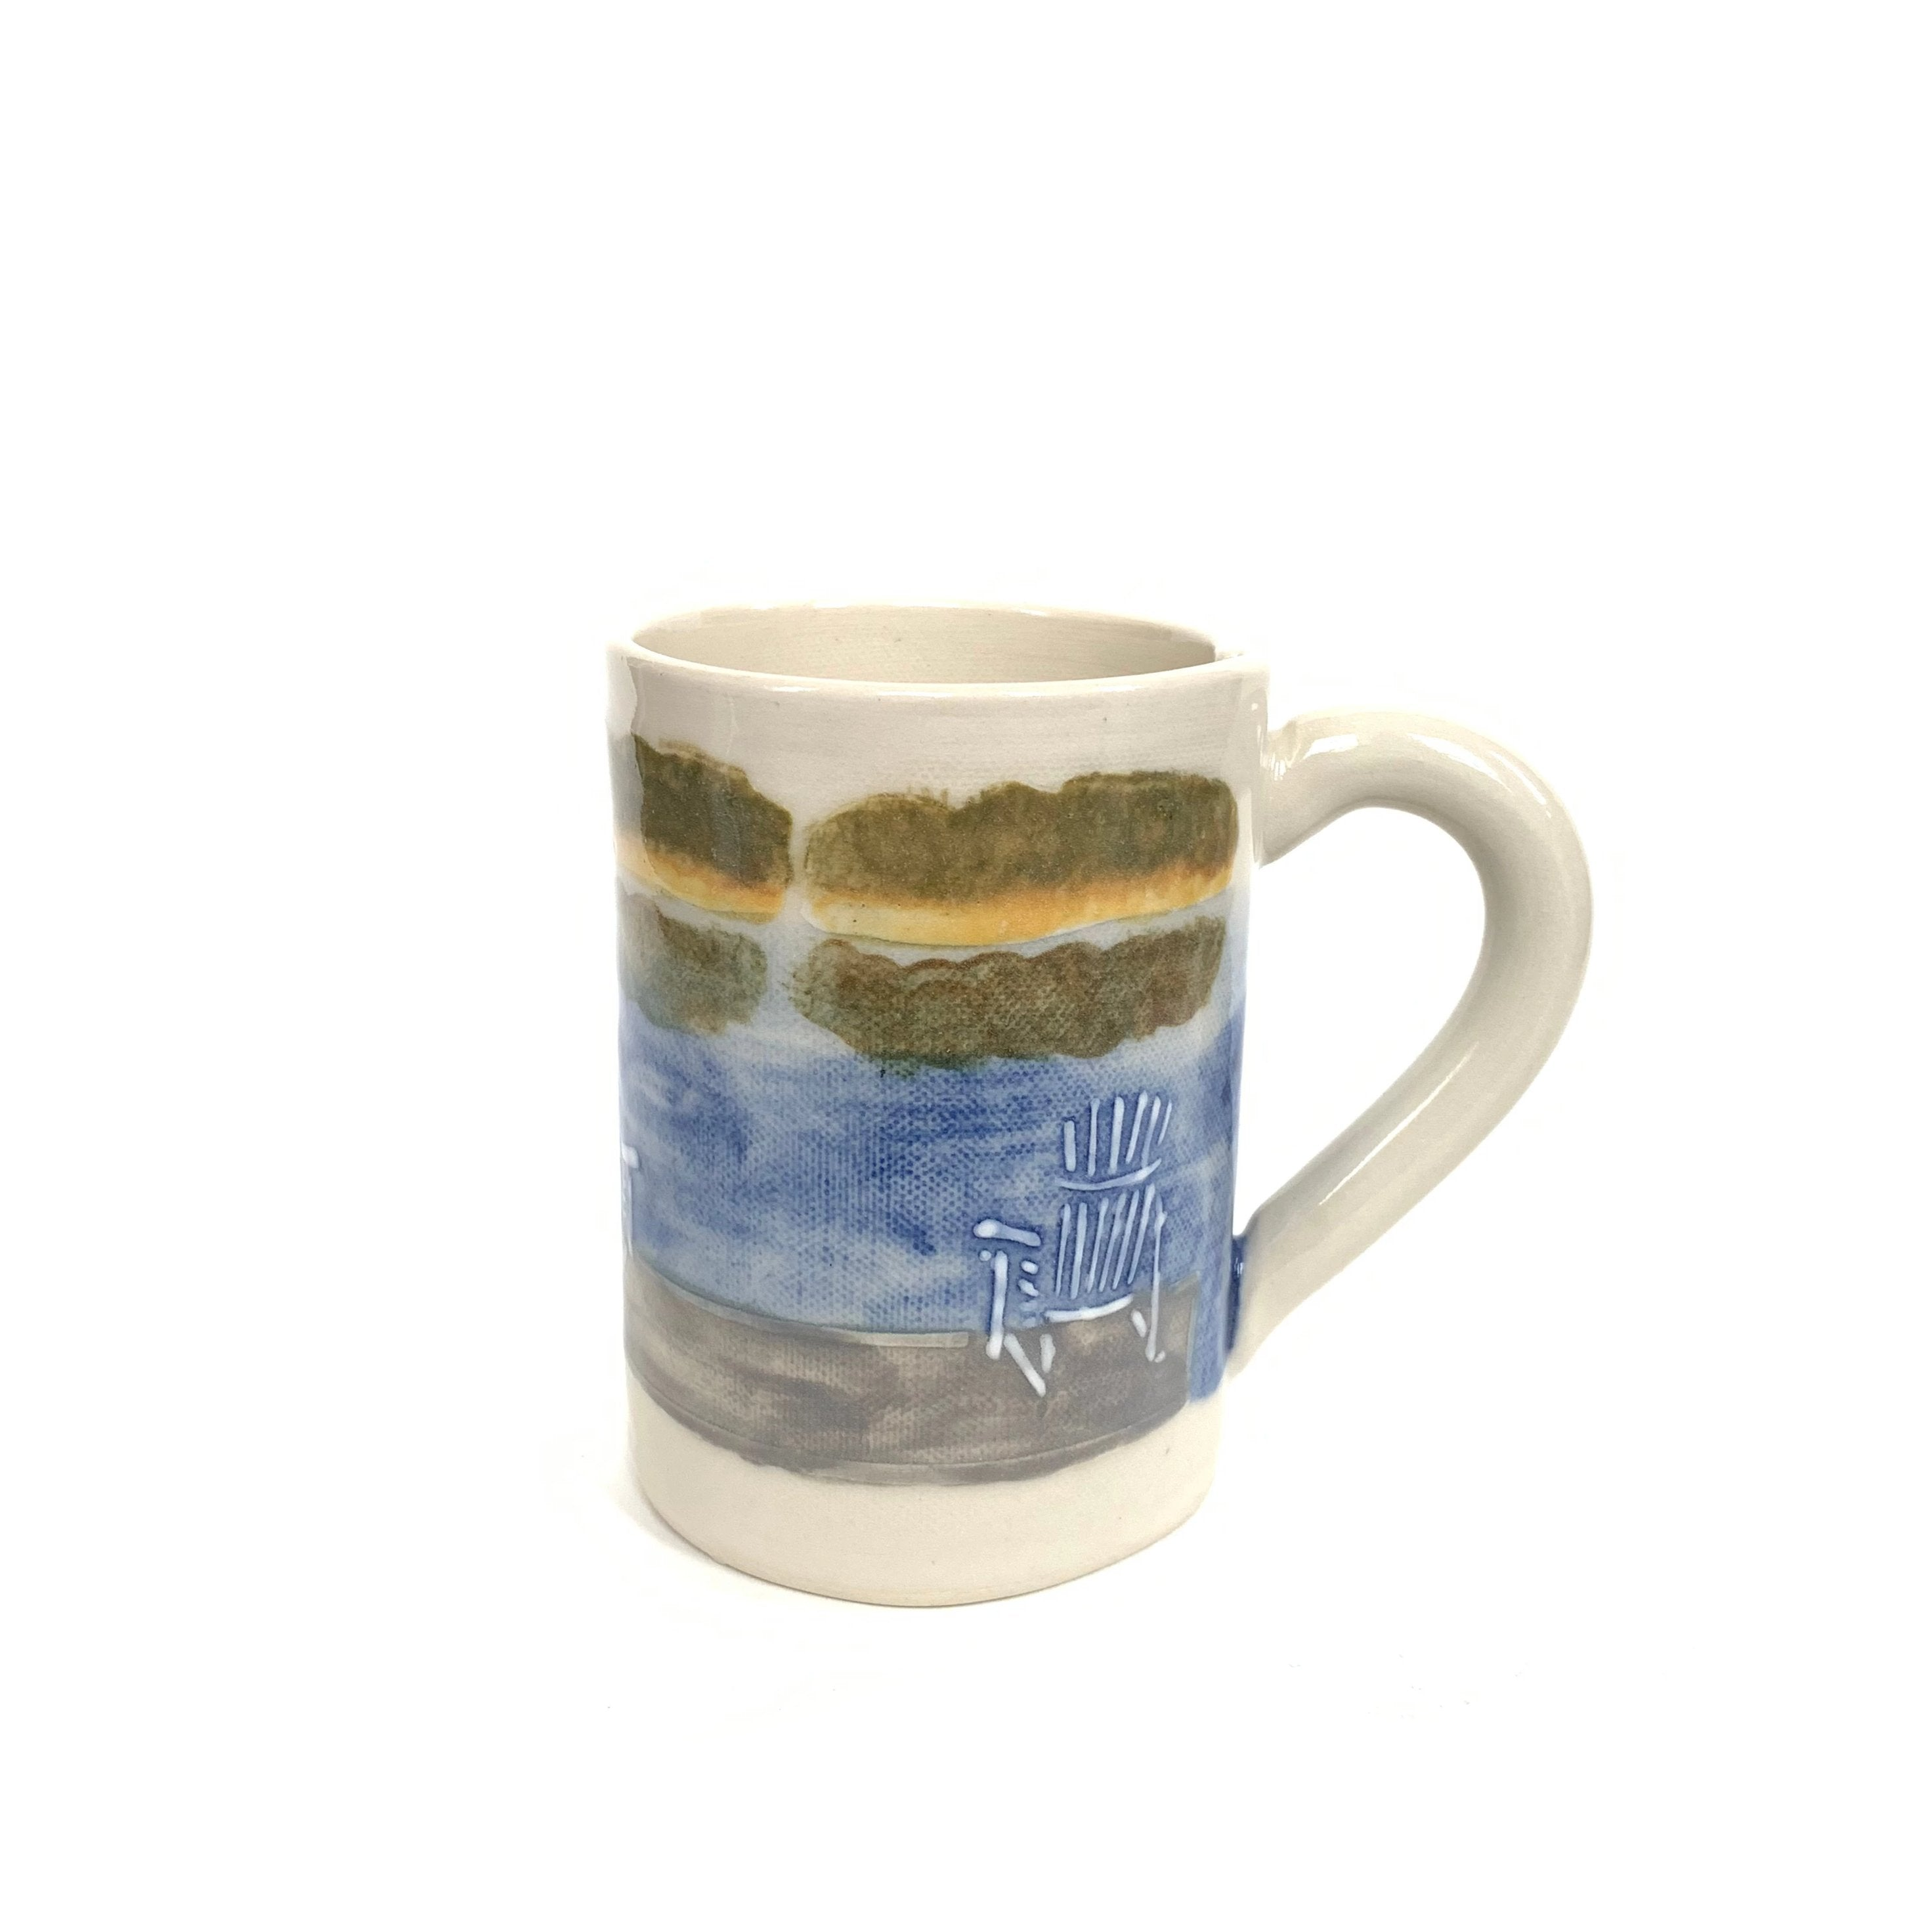 Made in Canada stoneware clay mug with hand painted Muskoka chair on the dock.